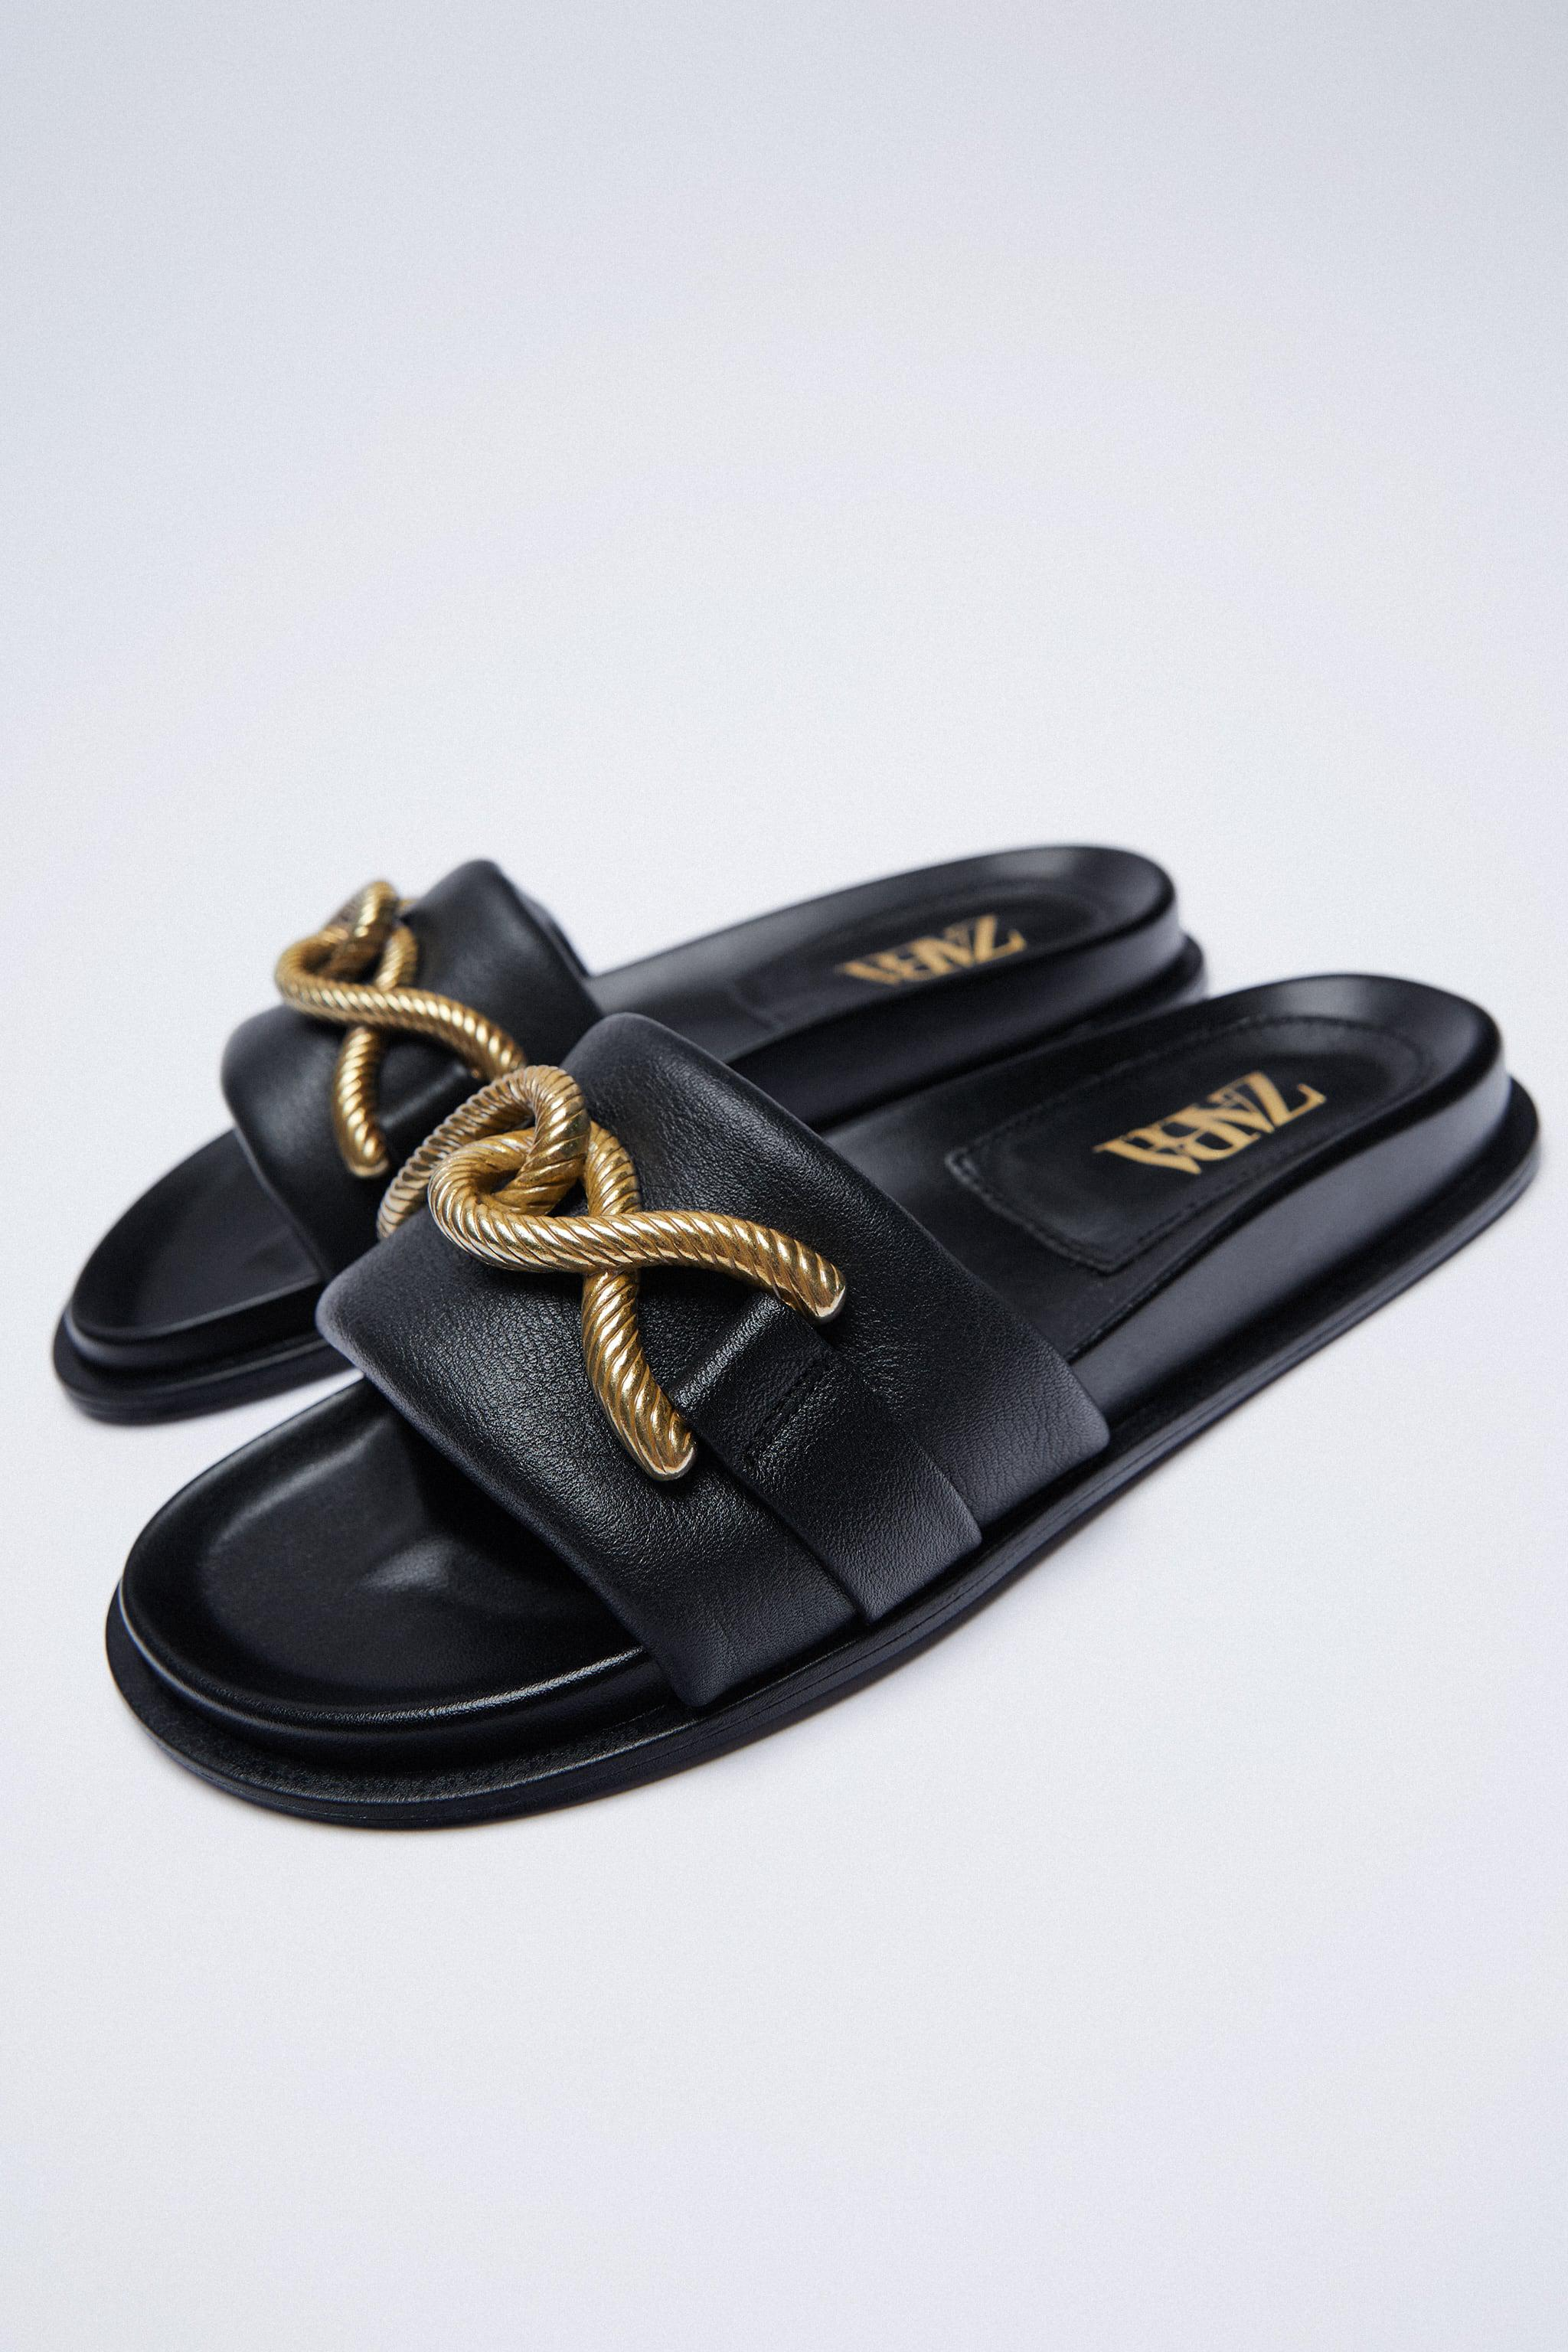 METAL BUCKLE FLAT LEATHER SANDALS 2